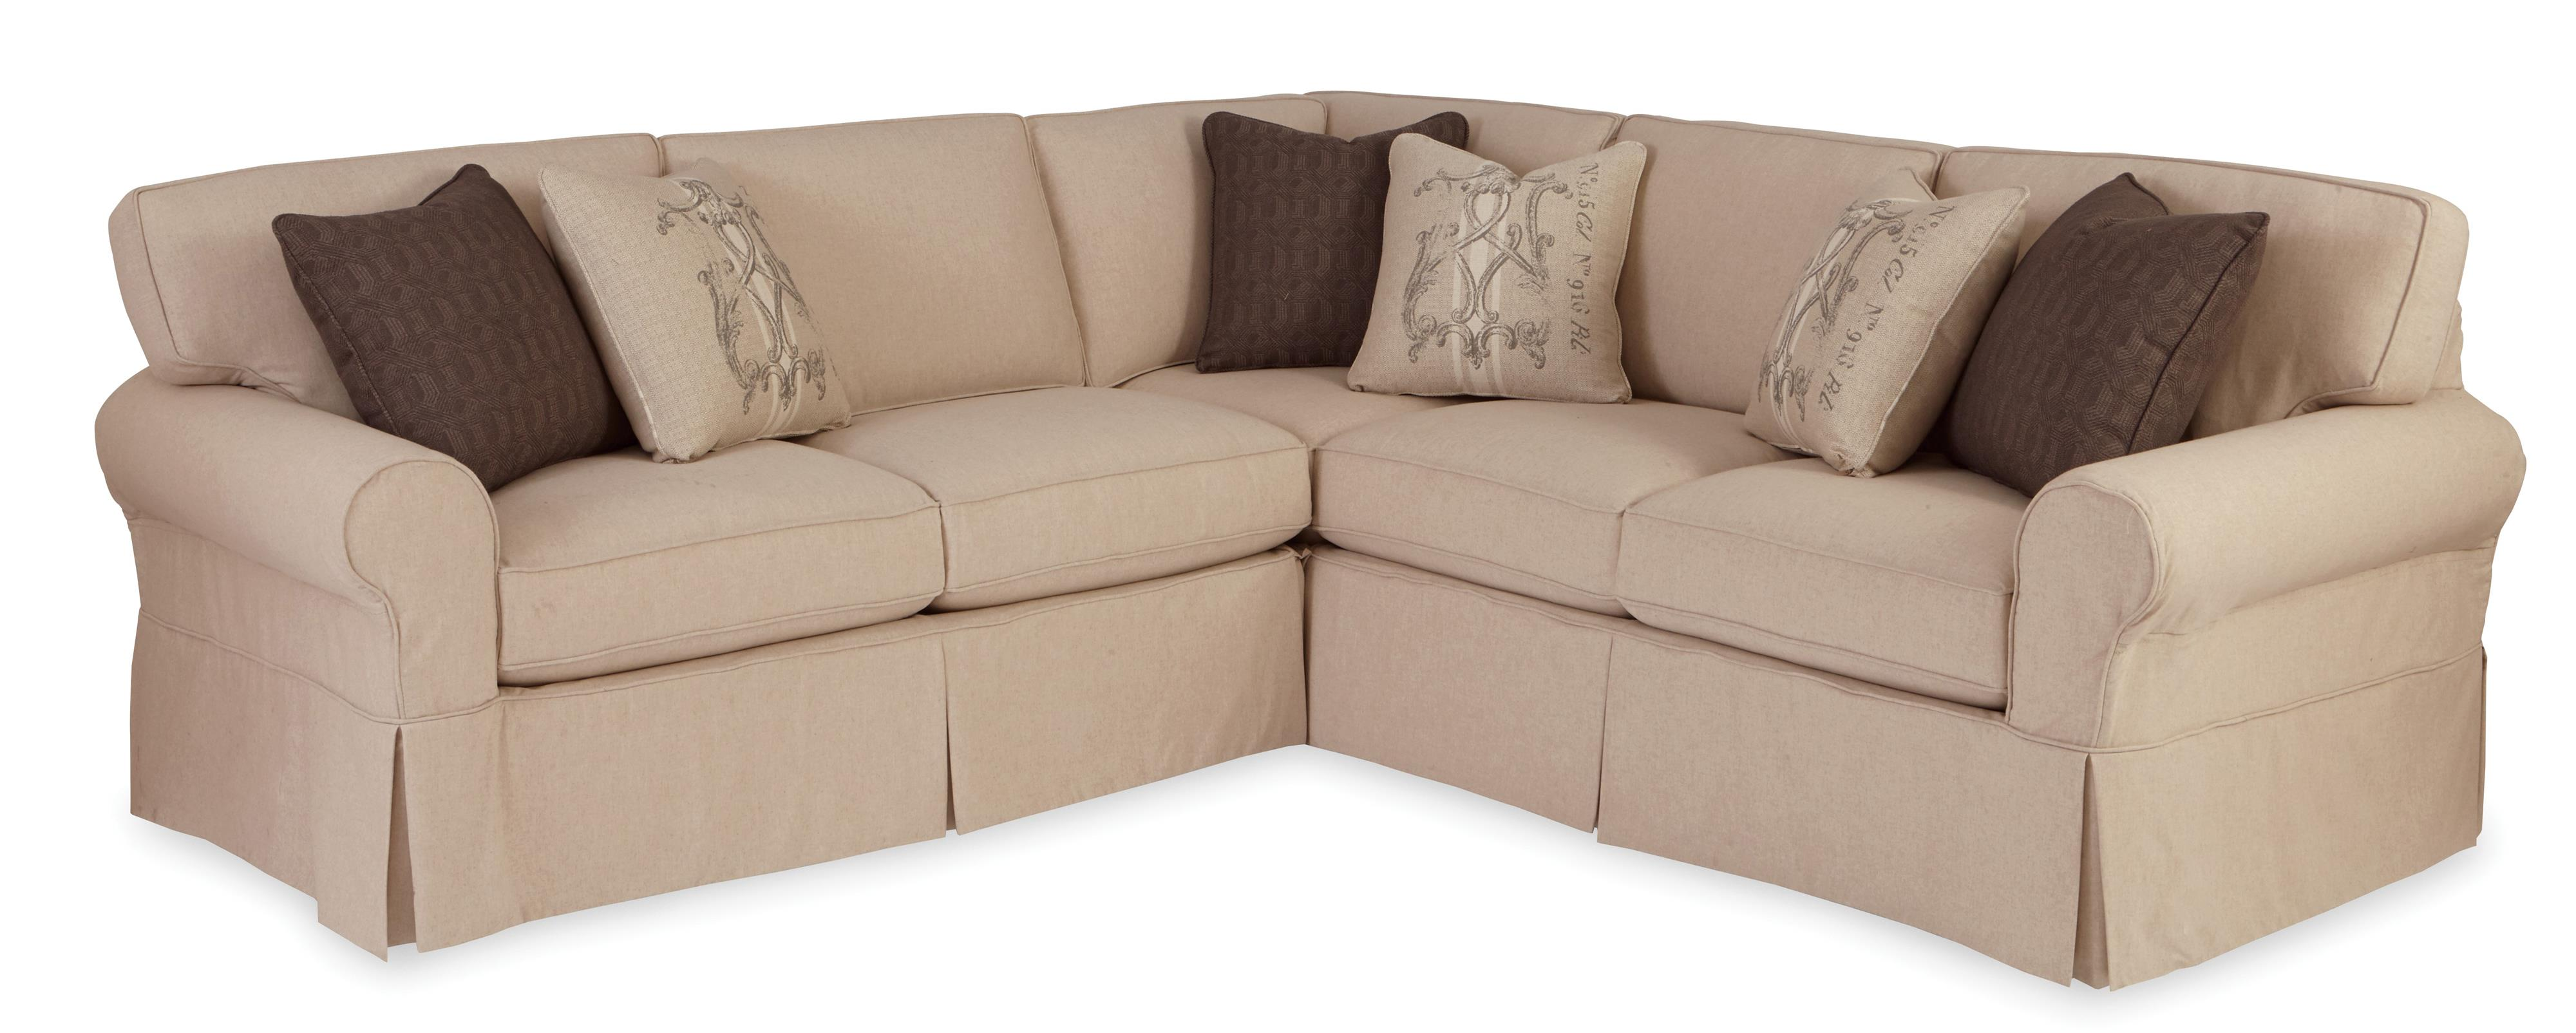 Two piece slipcovered sectional sofa with raf return sofa for 2 piece furniture set